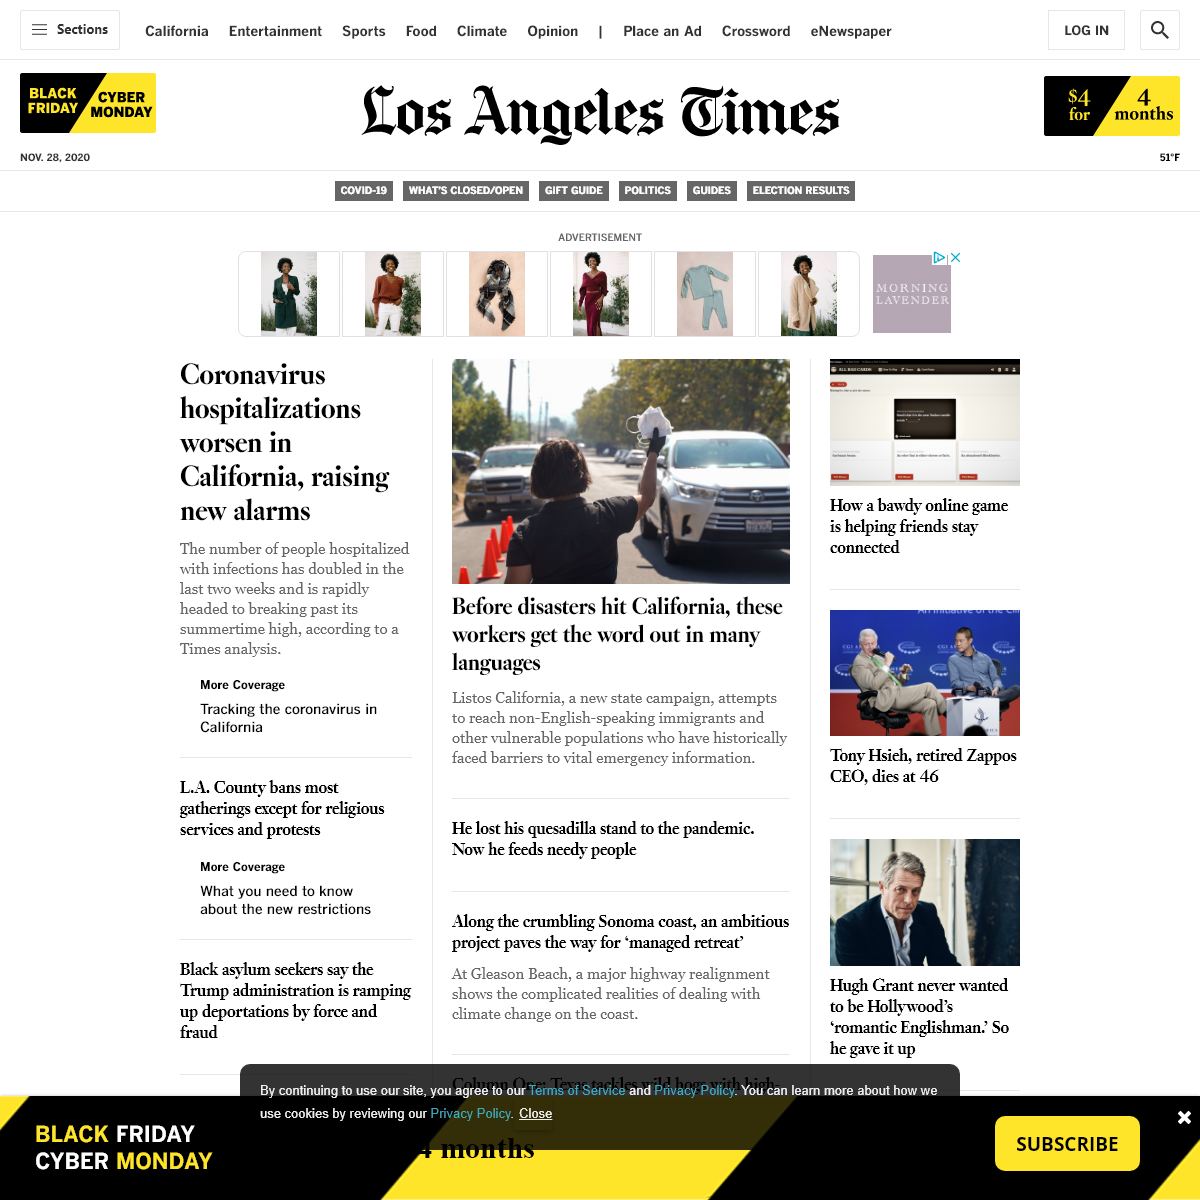 News from California, the nation and world - Los Angeles Times